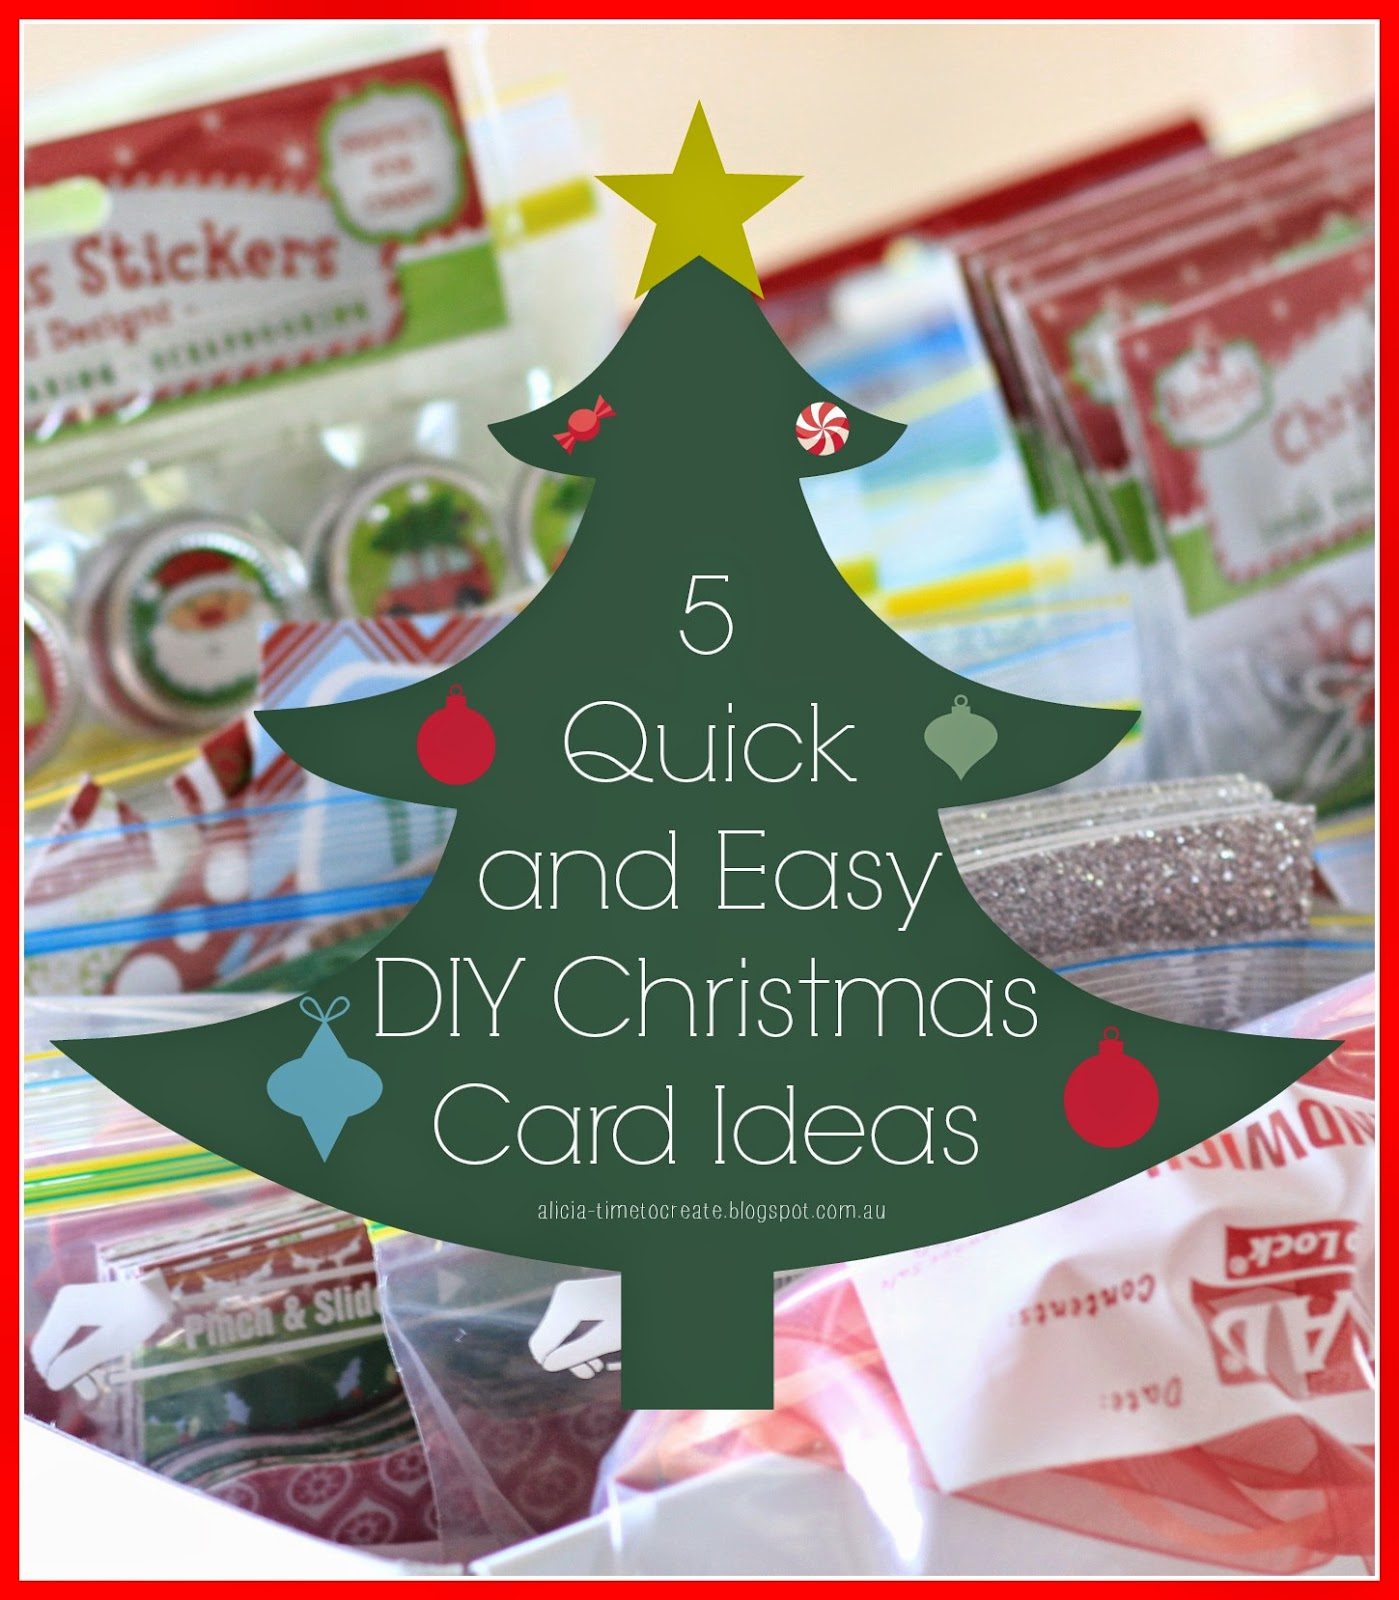 Time to create 5 quick and easy diy christmas card ideas 5 quick and easy diy christmas card ideas m4hsunfo